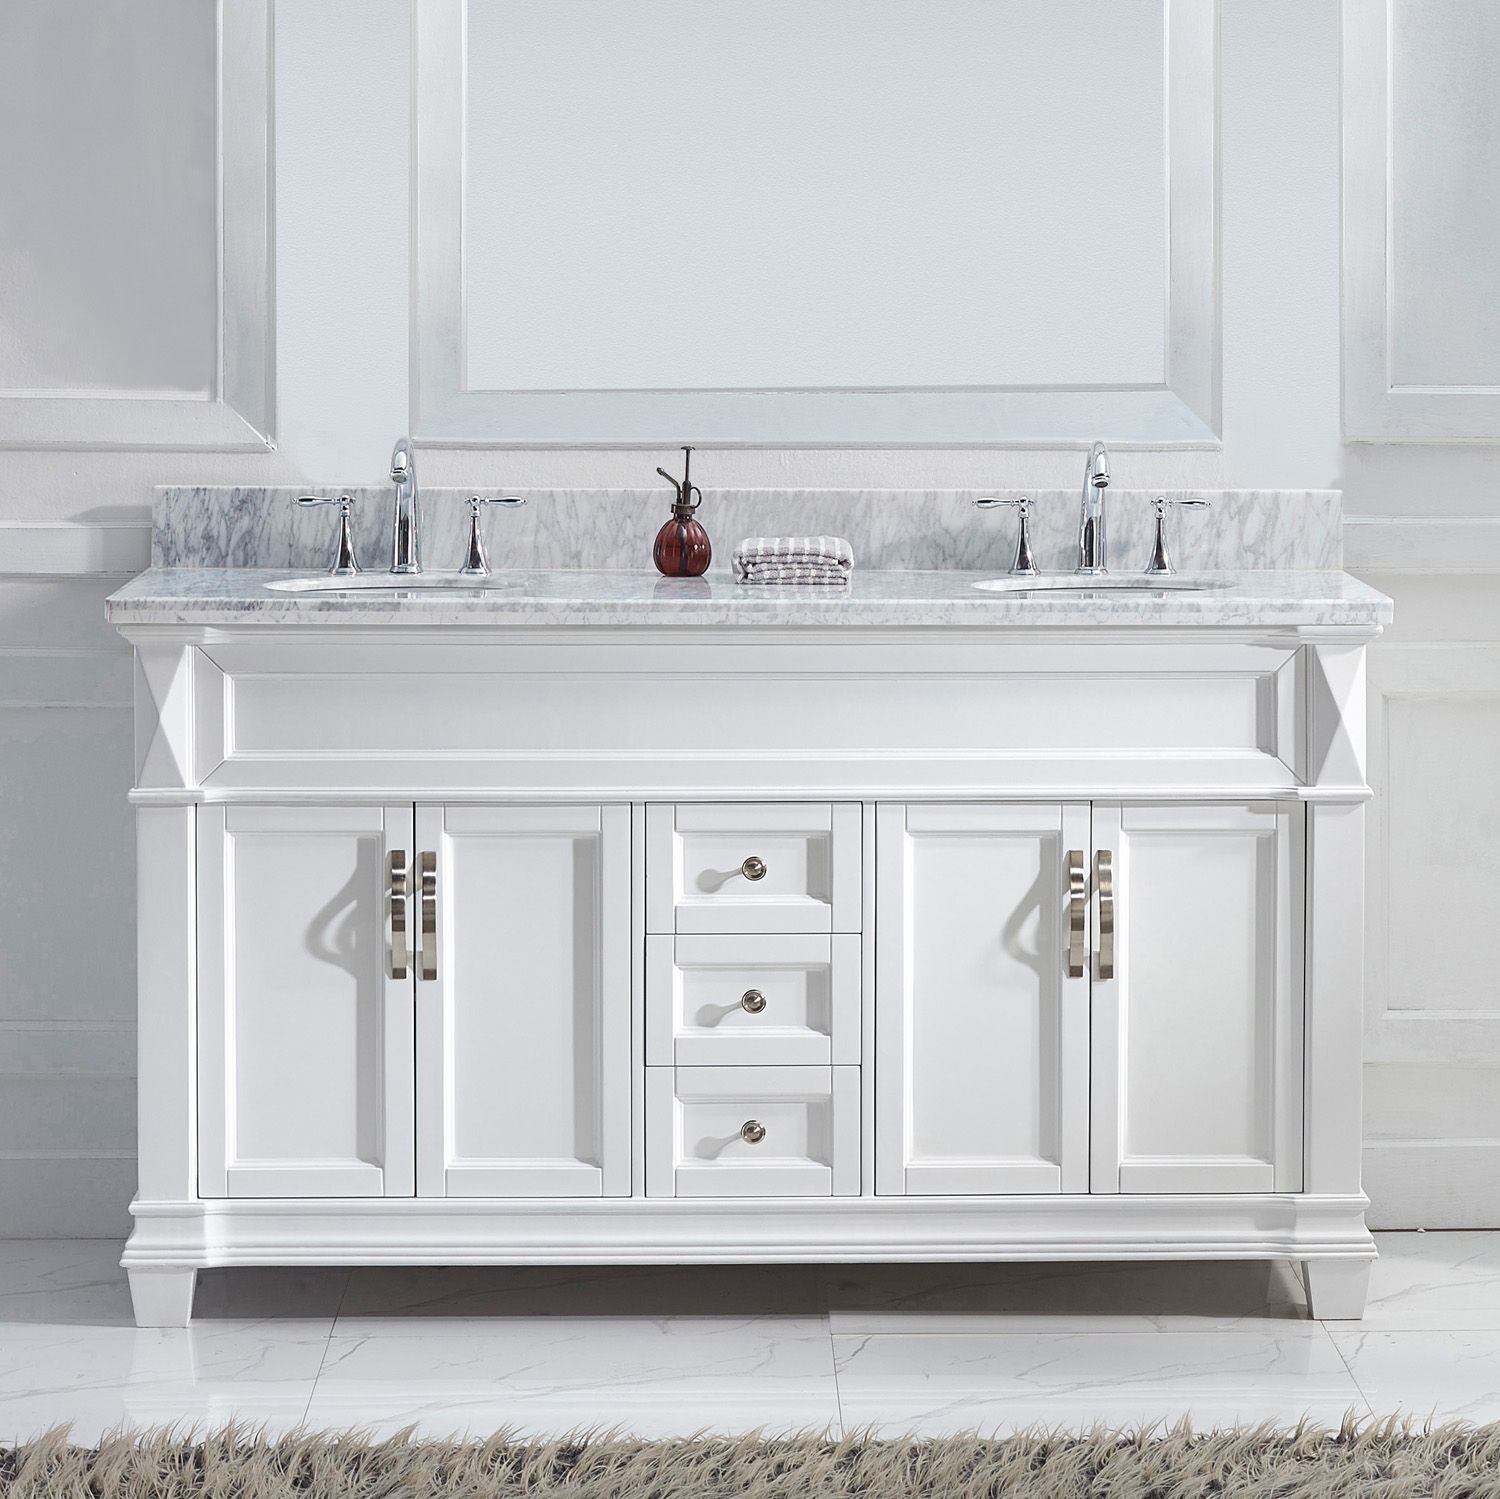 Virtu Usa Victoria 60 Md 2660 Wmro Wh Nm Double Sink Bathroom Vanity In White